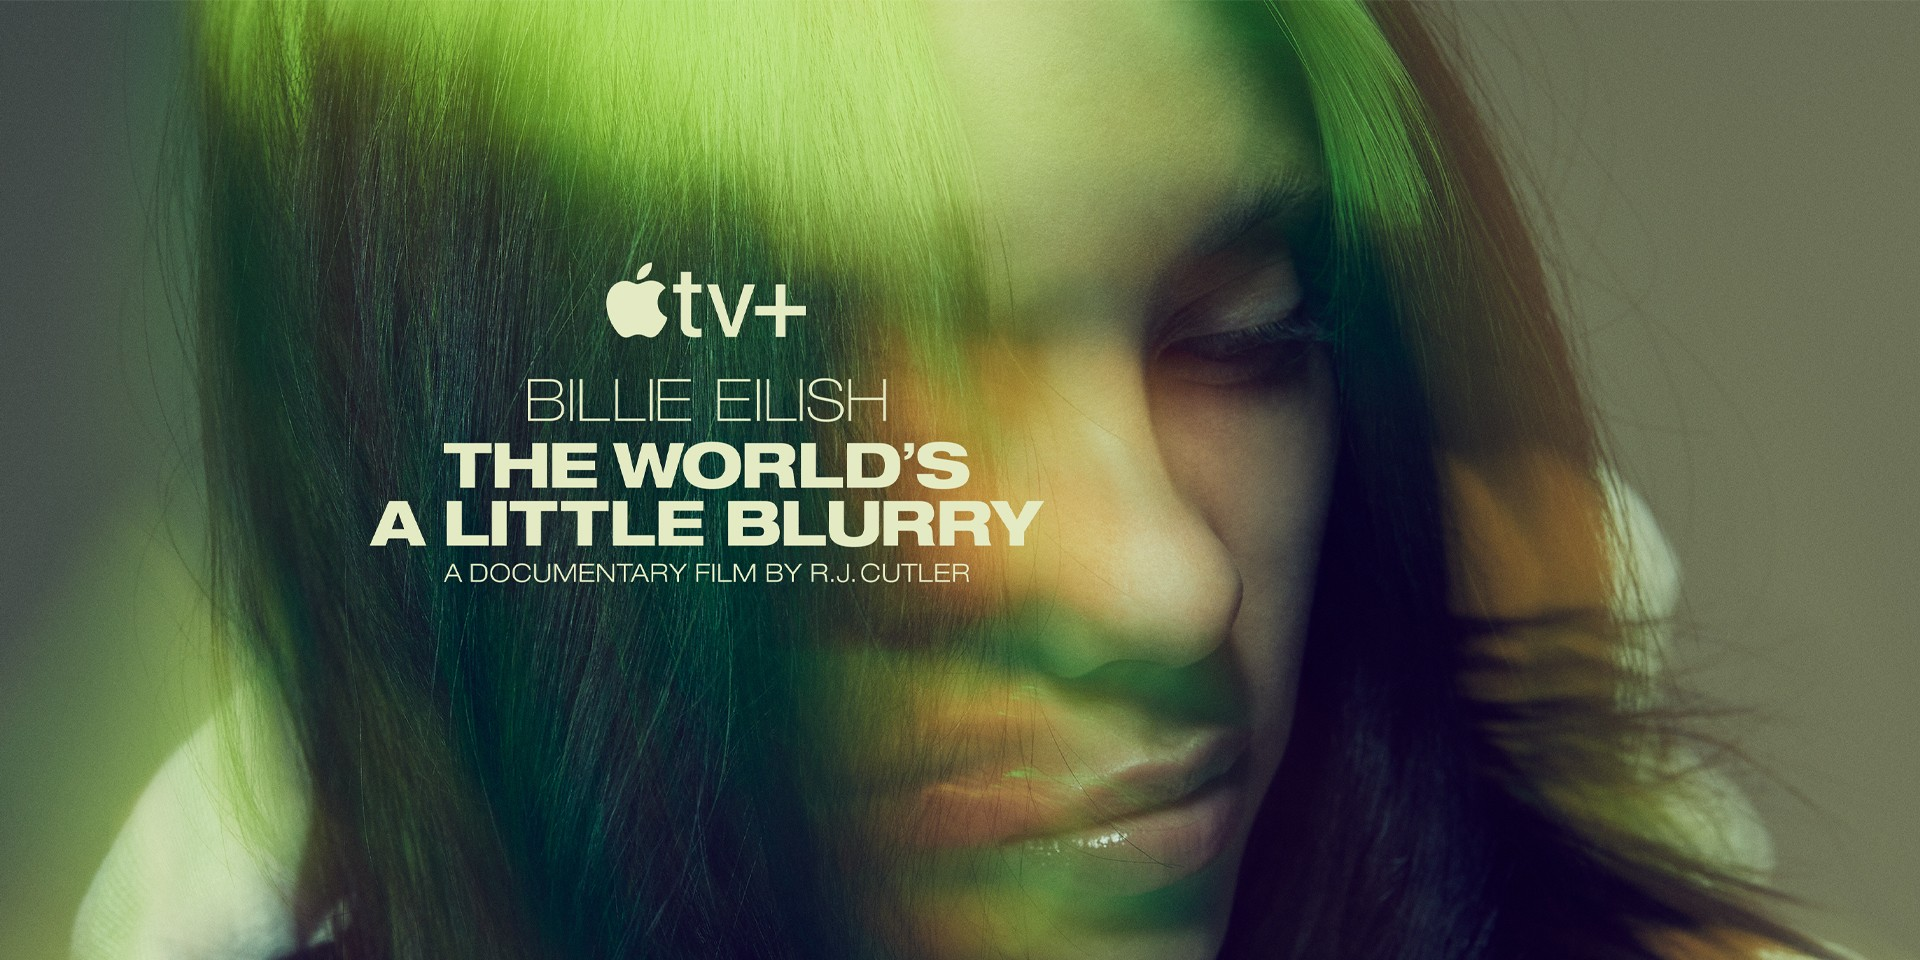 Billie Eilish's feature-length documentary The World's A Little Blurry is coming this February